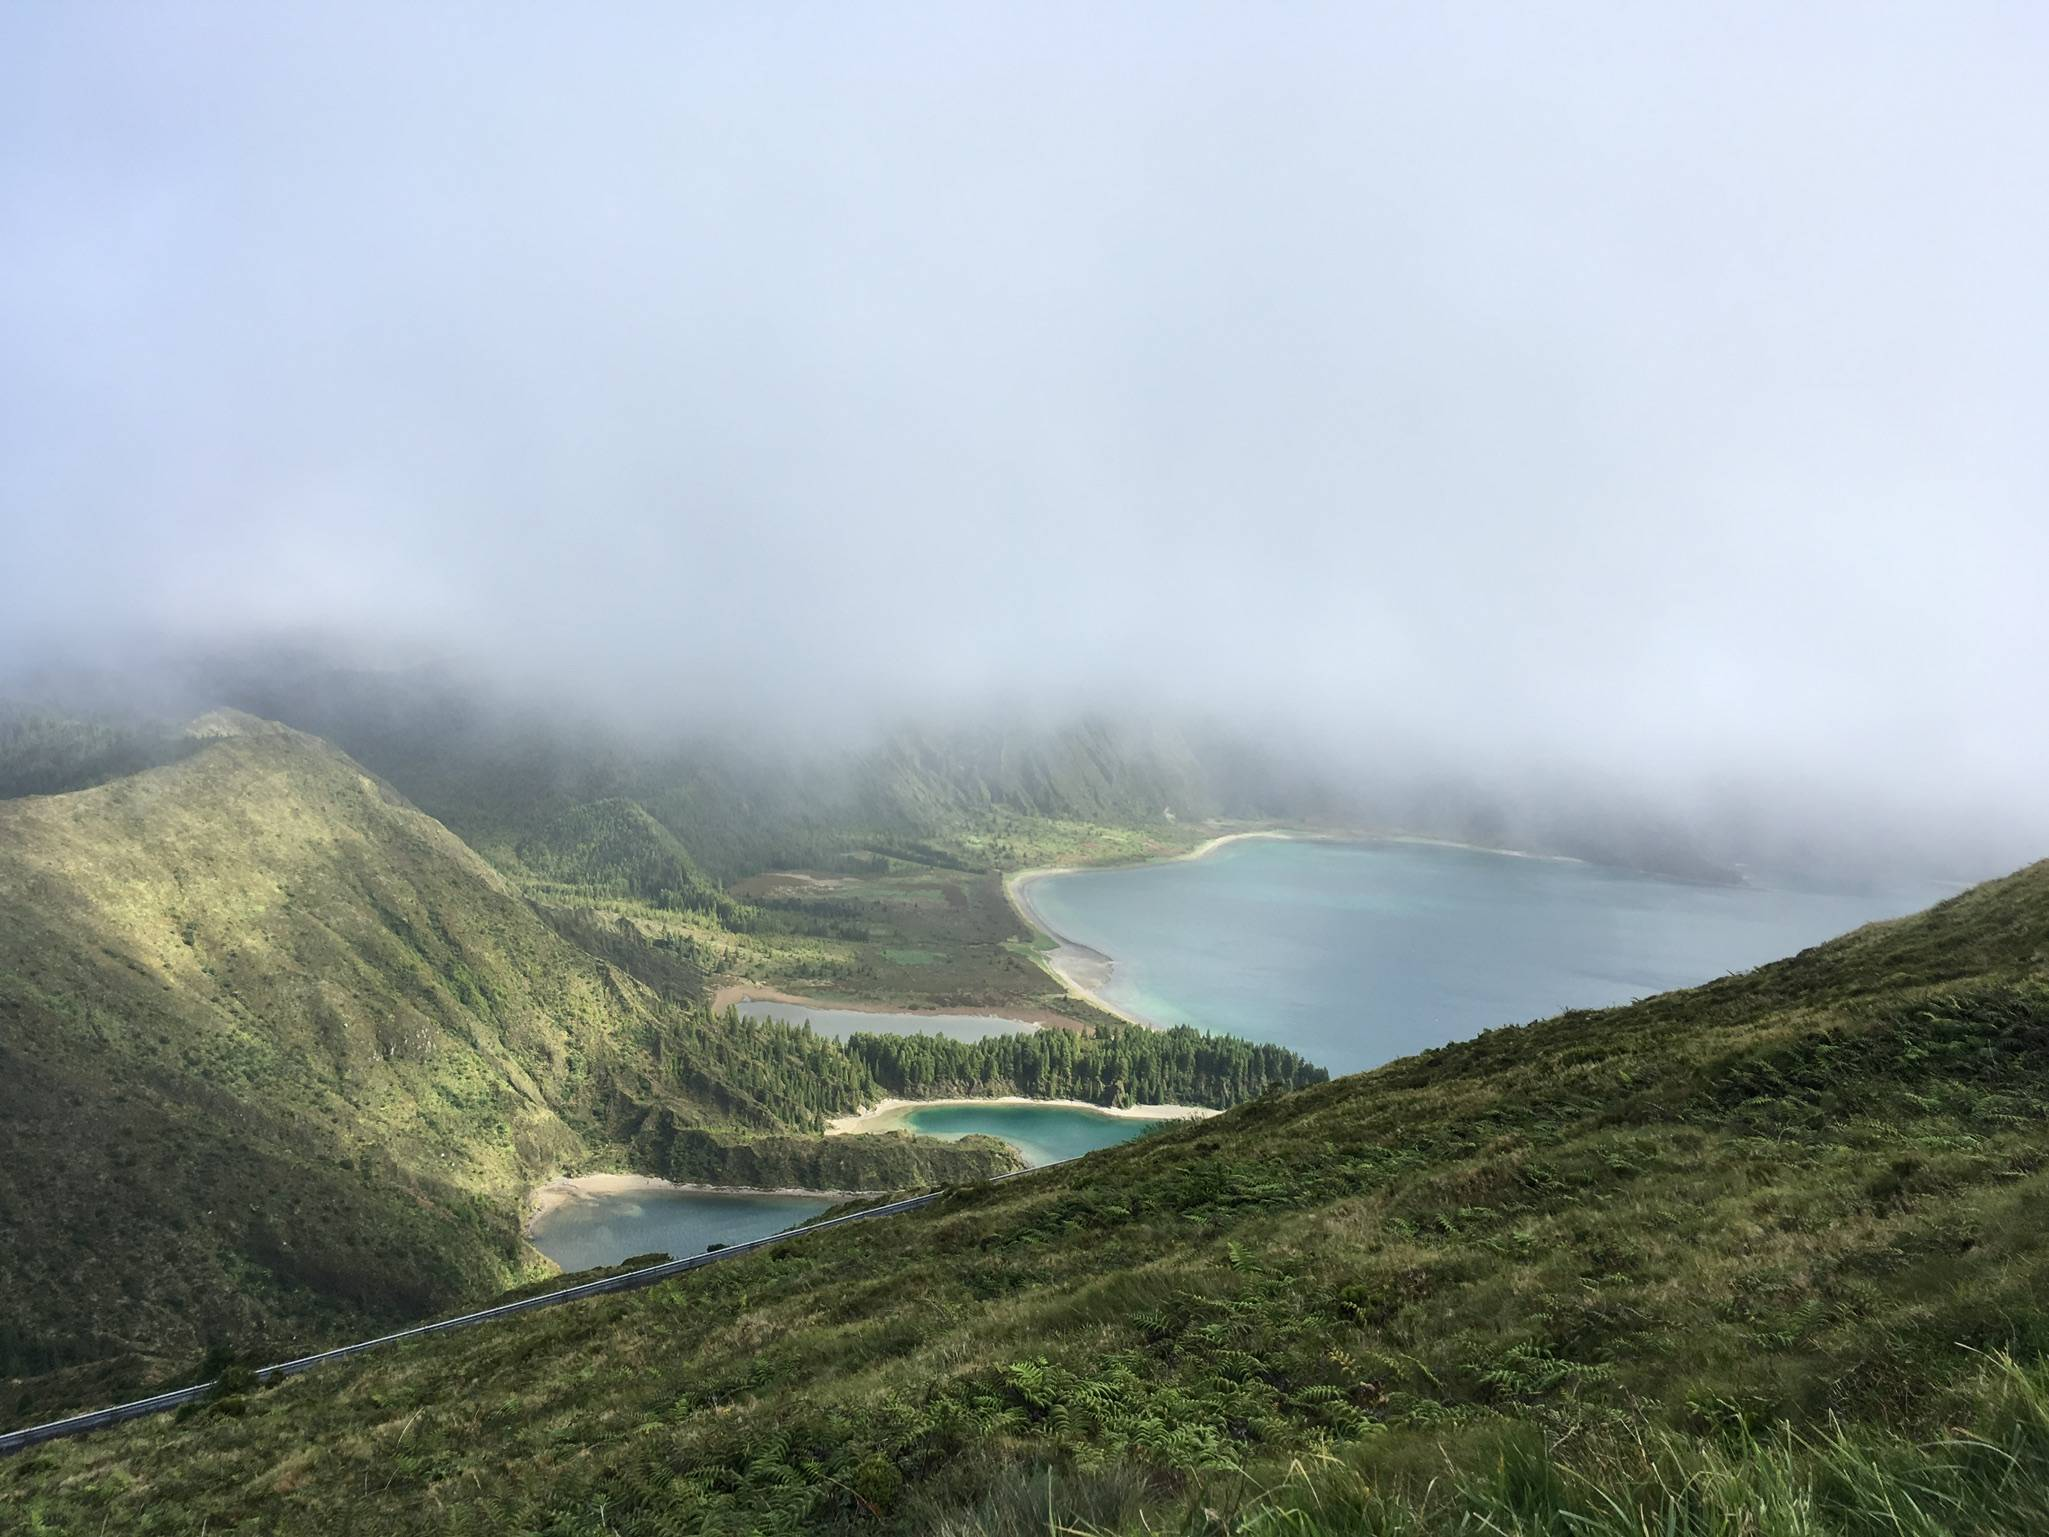 Photo 1: Lagoa Do Fogo, acores